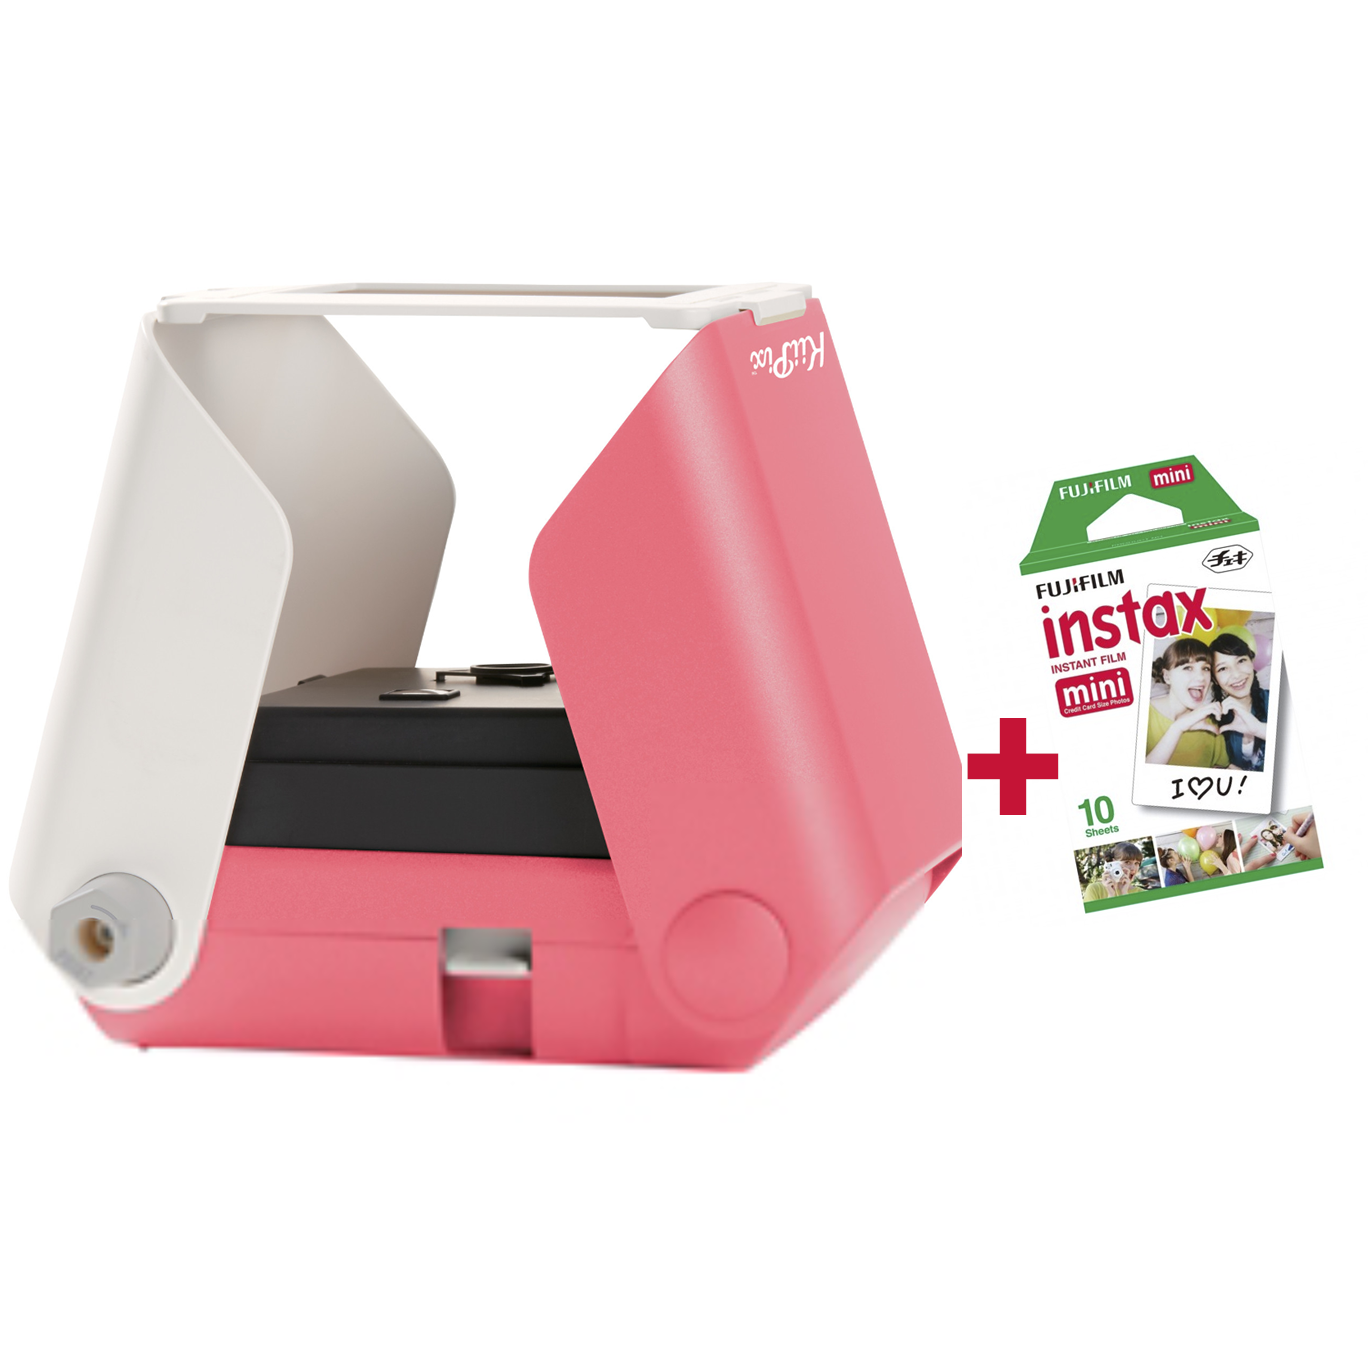 KiiPix SmartPhone Printer Instax Bundle - Cherry Blossom